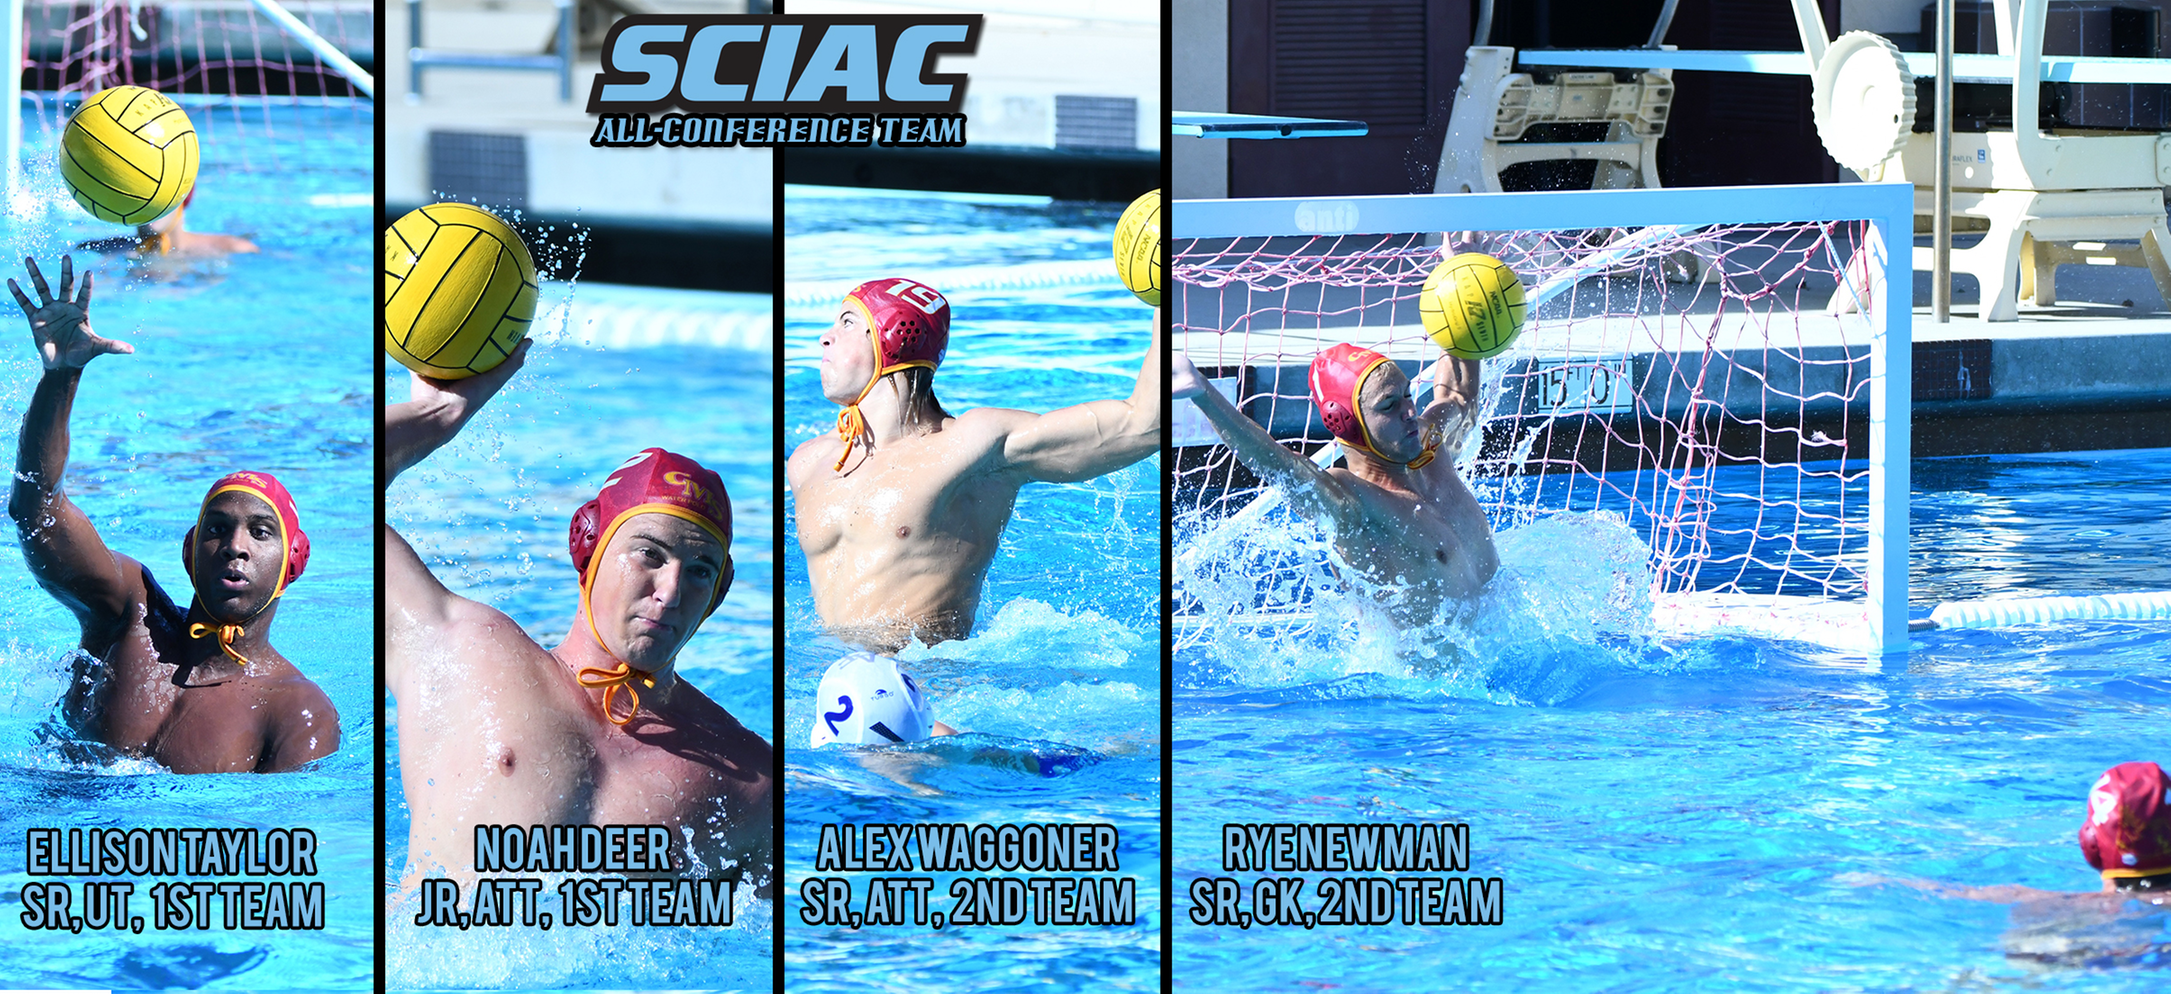 Four Stags All-SCIAC after valiant playoff run